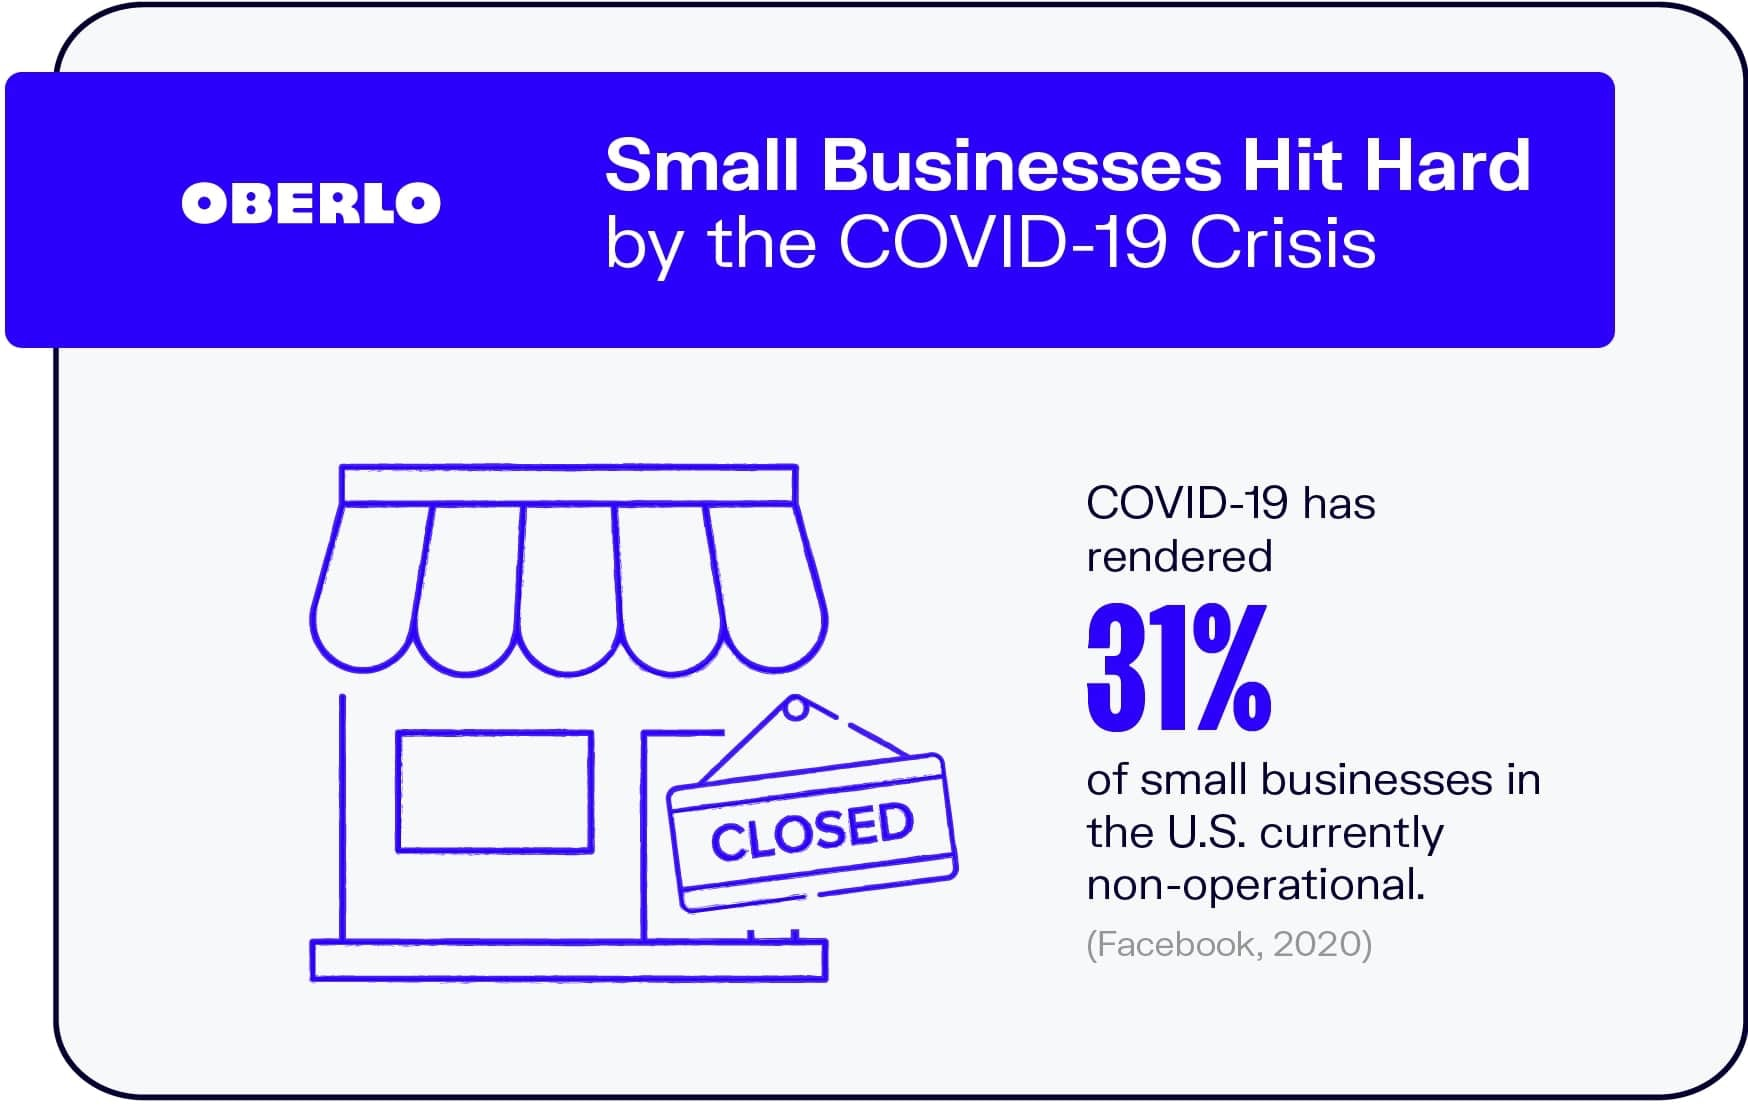 Small Businesses Hit Hard by the COVID-19 Crisis